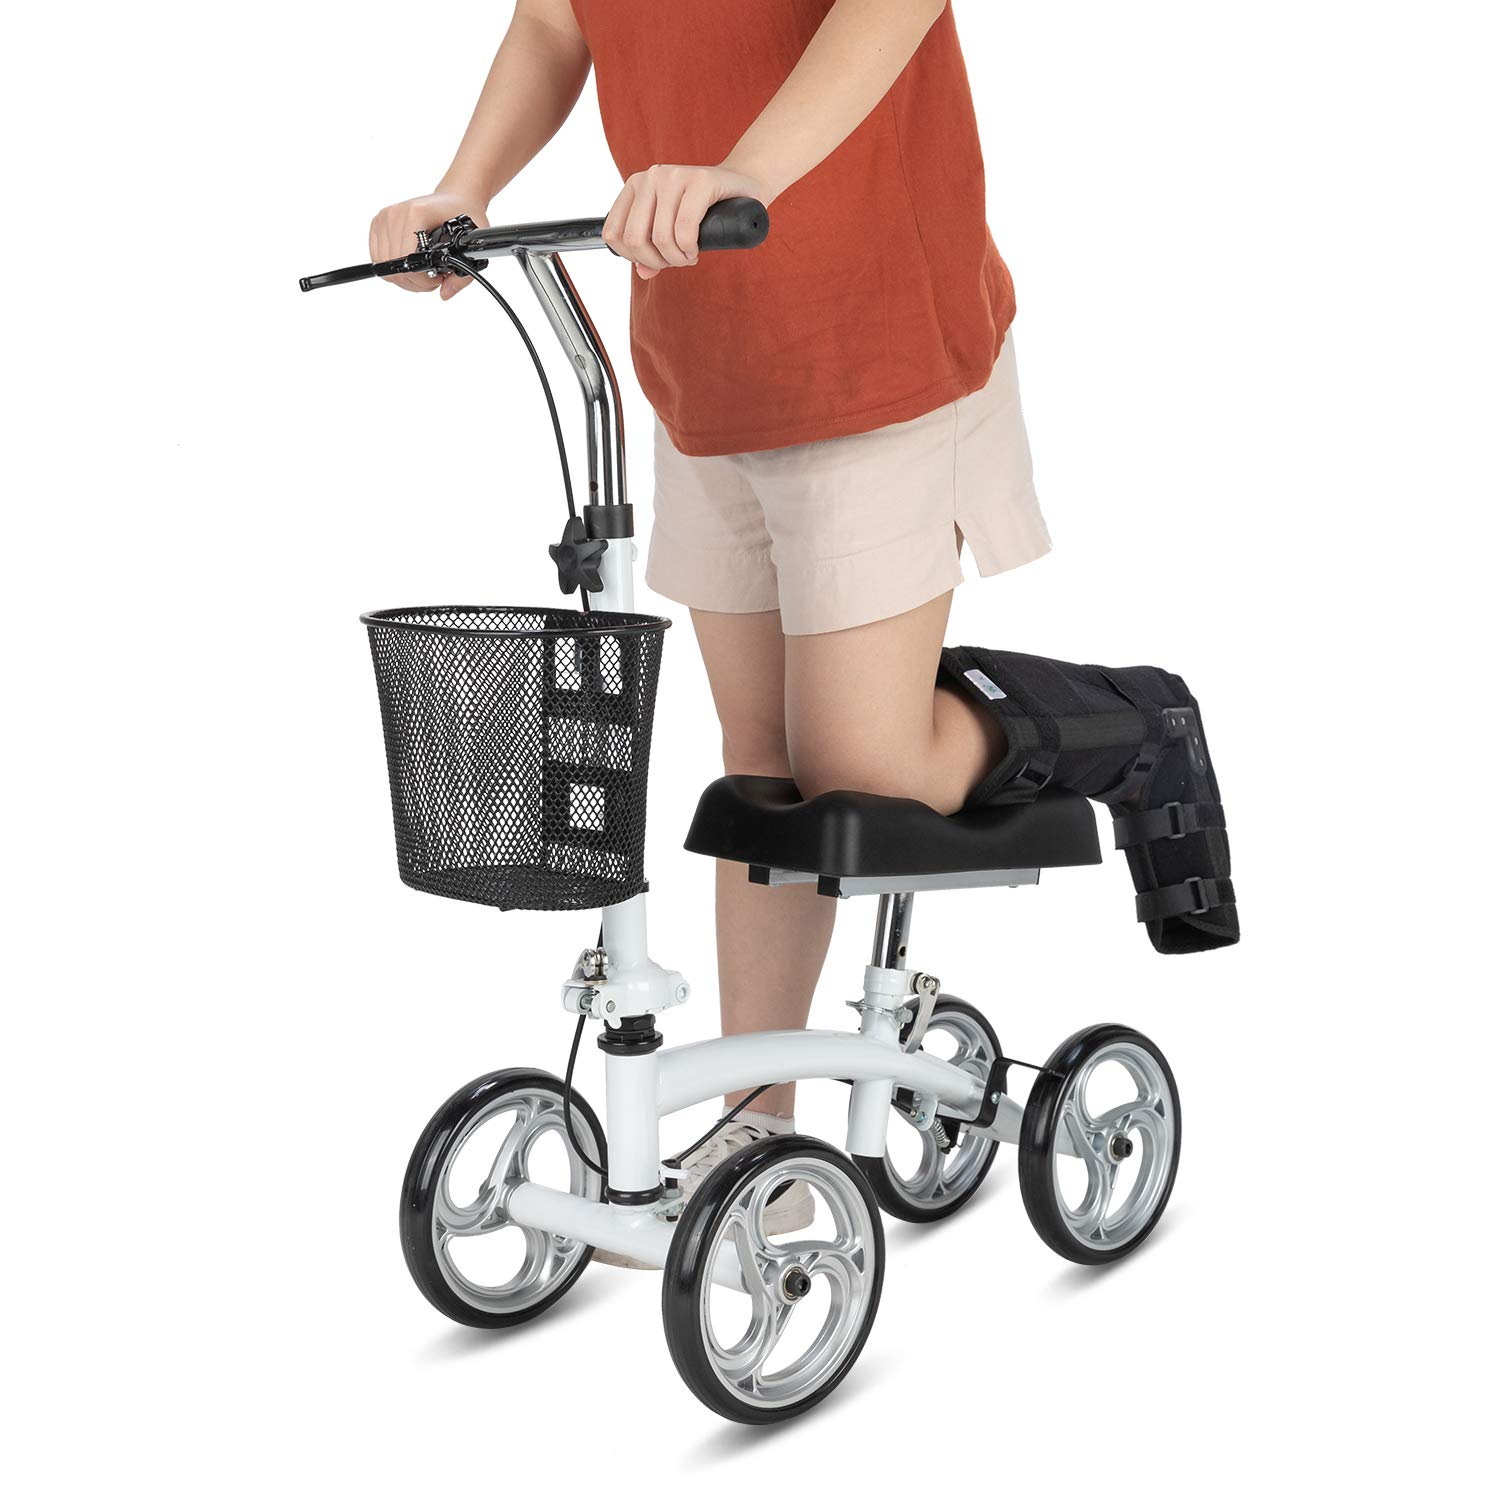 OasisSpace Small Size Lightweight Knee Scooter Walker,Compact and Portable Knee Walker Crutches Alternative